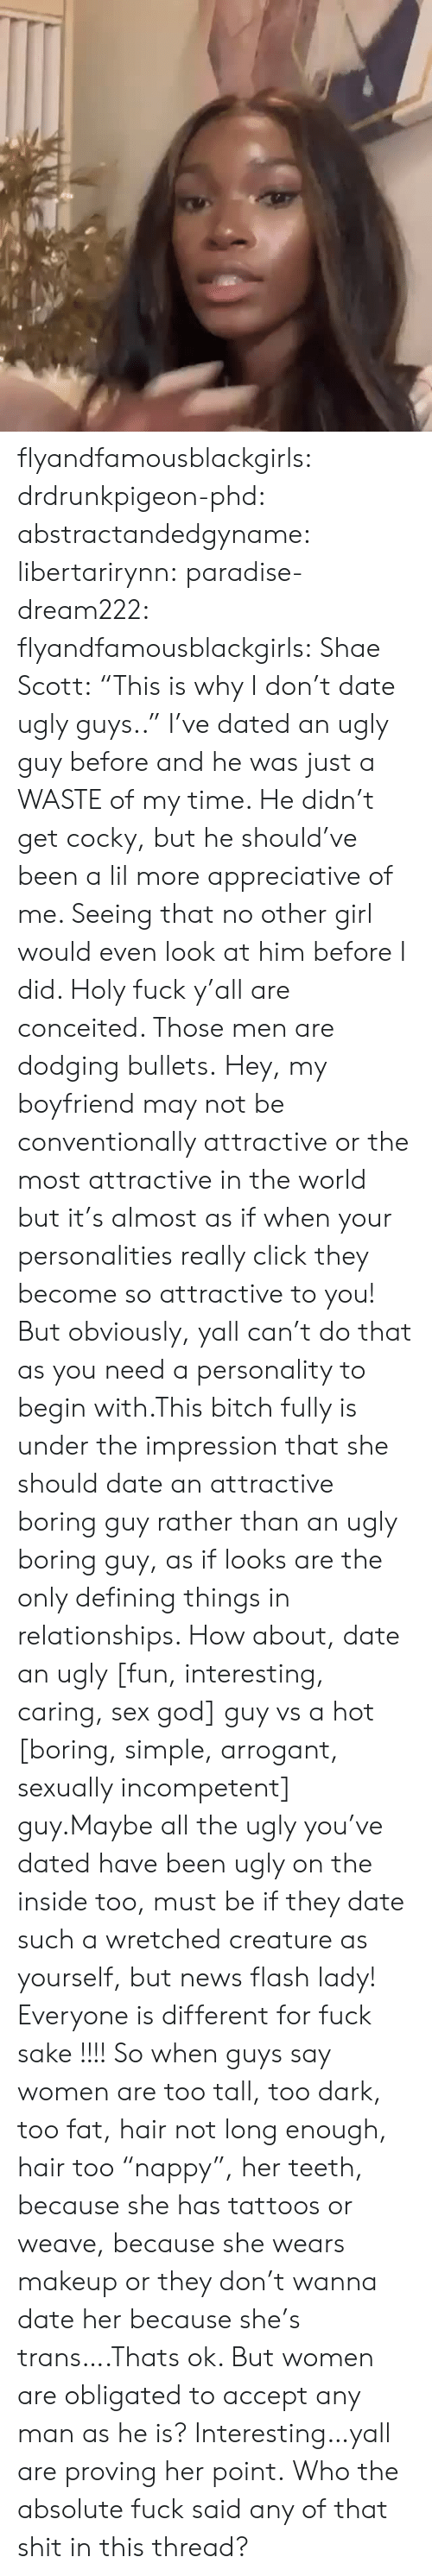 "Paradise: flyandfamousblackgirls:  drdrunkpigeon-phd:  abstractandedgyname:  libertarirynn:  paradise-dream222:  flyandfamousblackgirls:  Shae Scott: ""This is why I don't date ugly guys..""  I've dated an ugly guy before and he was just a WASTE of my time. He didn't get cocky, but he should've been a lil more appreciative of me. Seeing that no other girl would even look at him before I did.   Holy fuck y'all are conceited. Those men are dodging bullets.    Hey, my boyfriend may not be conventionally attractive or the most attractive in the world but it's almost as if when your personalities really click they become so attractive to you! But obviously, yall can't do that as you need a personality to begin with.This bitch fully is under the impression that she should date an attractive boring guy rather than an ugly boring guy, as if looks are the only defining things in relationships. How about, date an ugly [fun, interesting, caring, sex god] guy vs a hot [boring, simple, arrogant, sexually incompetent] guy.Maybe all the ugly you've dated have been ugly on the inside too, must be if they date such a wretched creature as yourself, but news flash lady! Everyone is different for fuck sake !!!!  So when guys say women are too tall, too dark, too fat, hair not long enough, hair too ""nappy"", her teeth, because she has tattoos or weave, because she wears makeup or they don't wanna date her because she's trans….Thats ok. But women are obligated to accept any man as he is? Interesting…yall are proving her point.  Who the absolute fuck said any of that shit in this thread?"